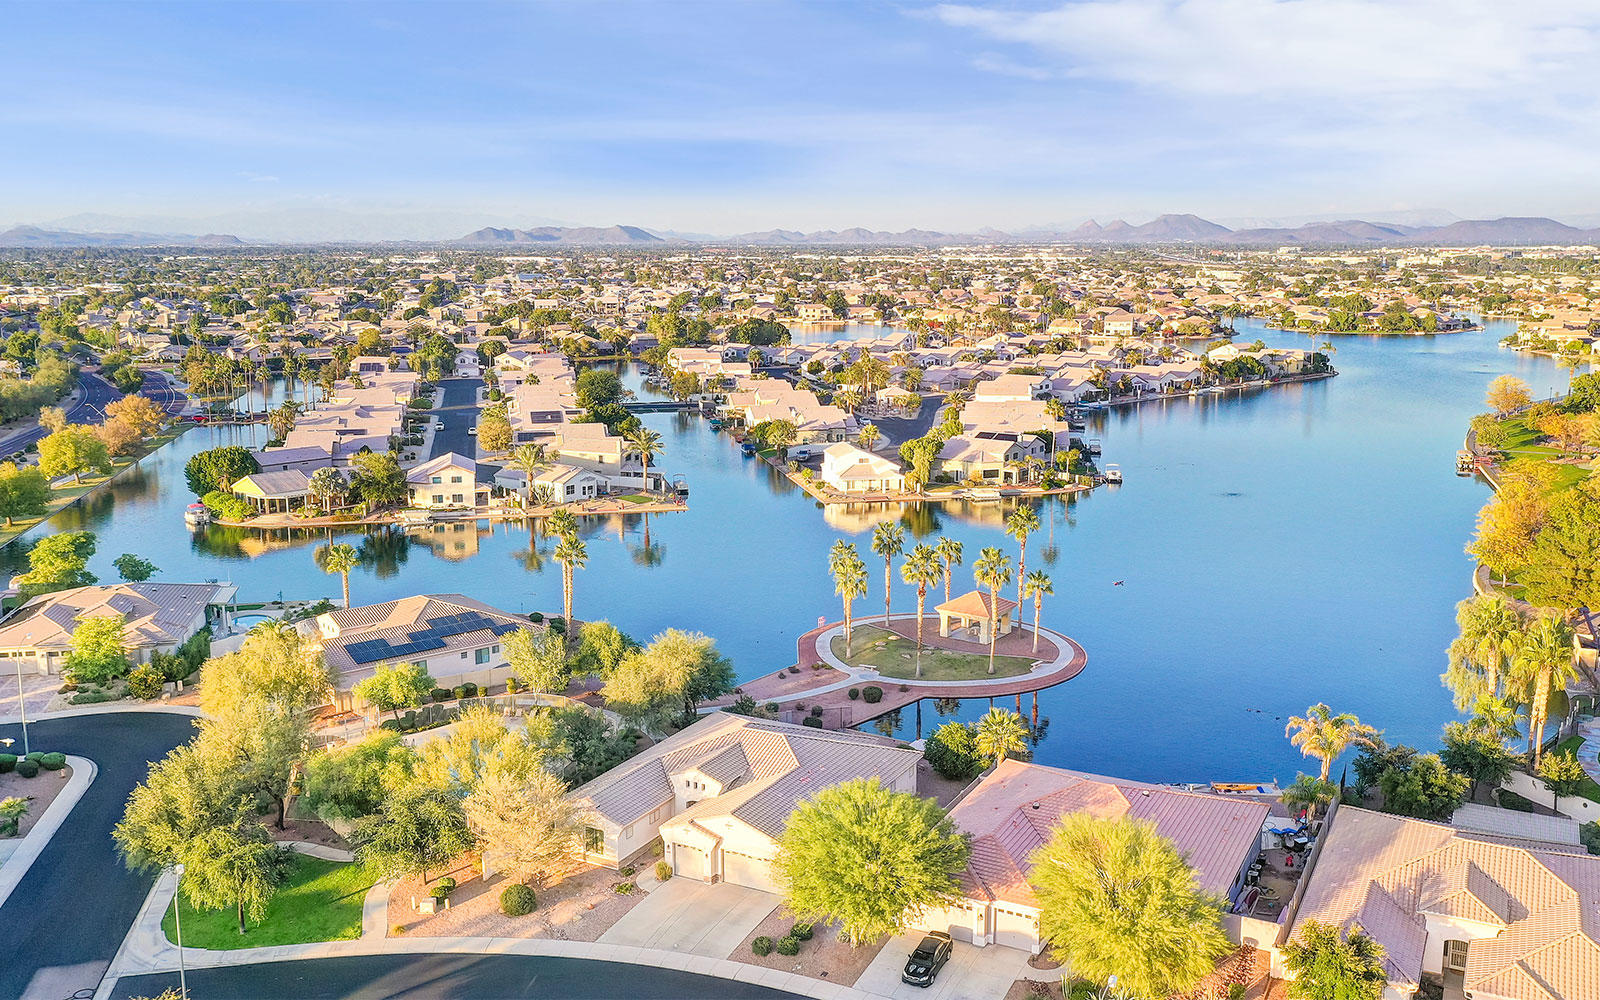 Aerial view of the lake and many waterfront homes in Desert Harbor in Peoria, Arizona